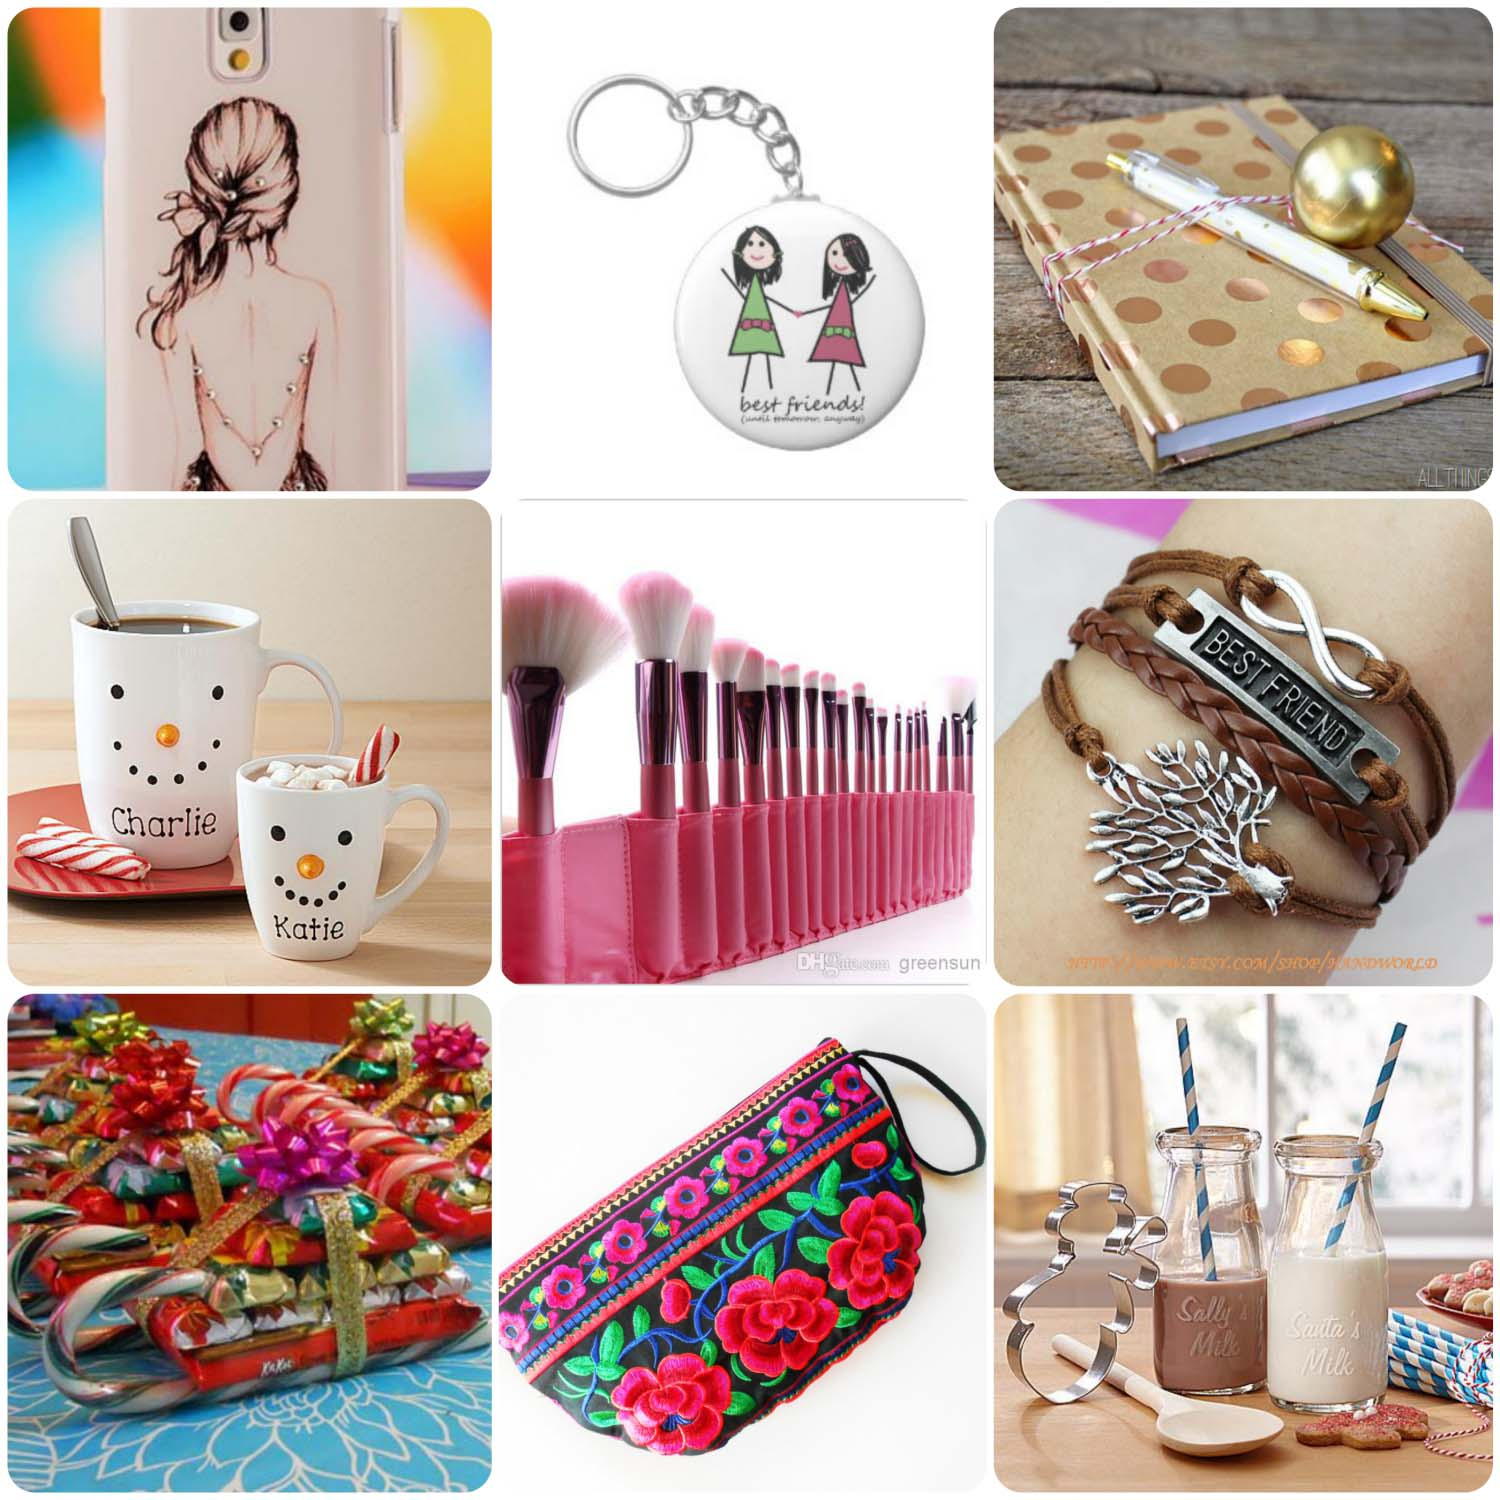 10 Adorable Gift Ideas For Young Girls 2017